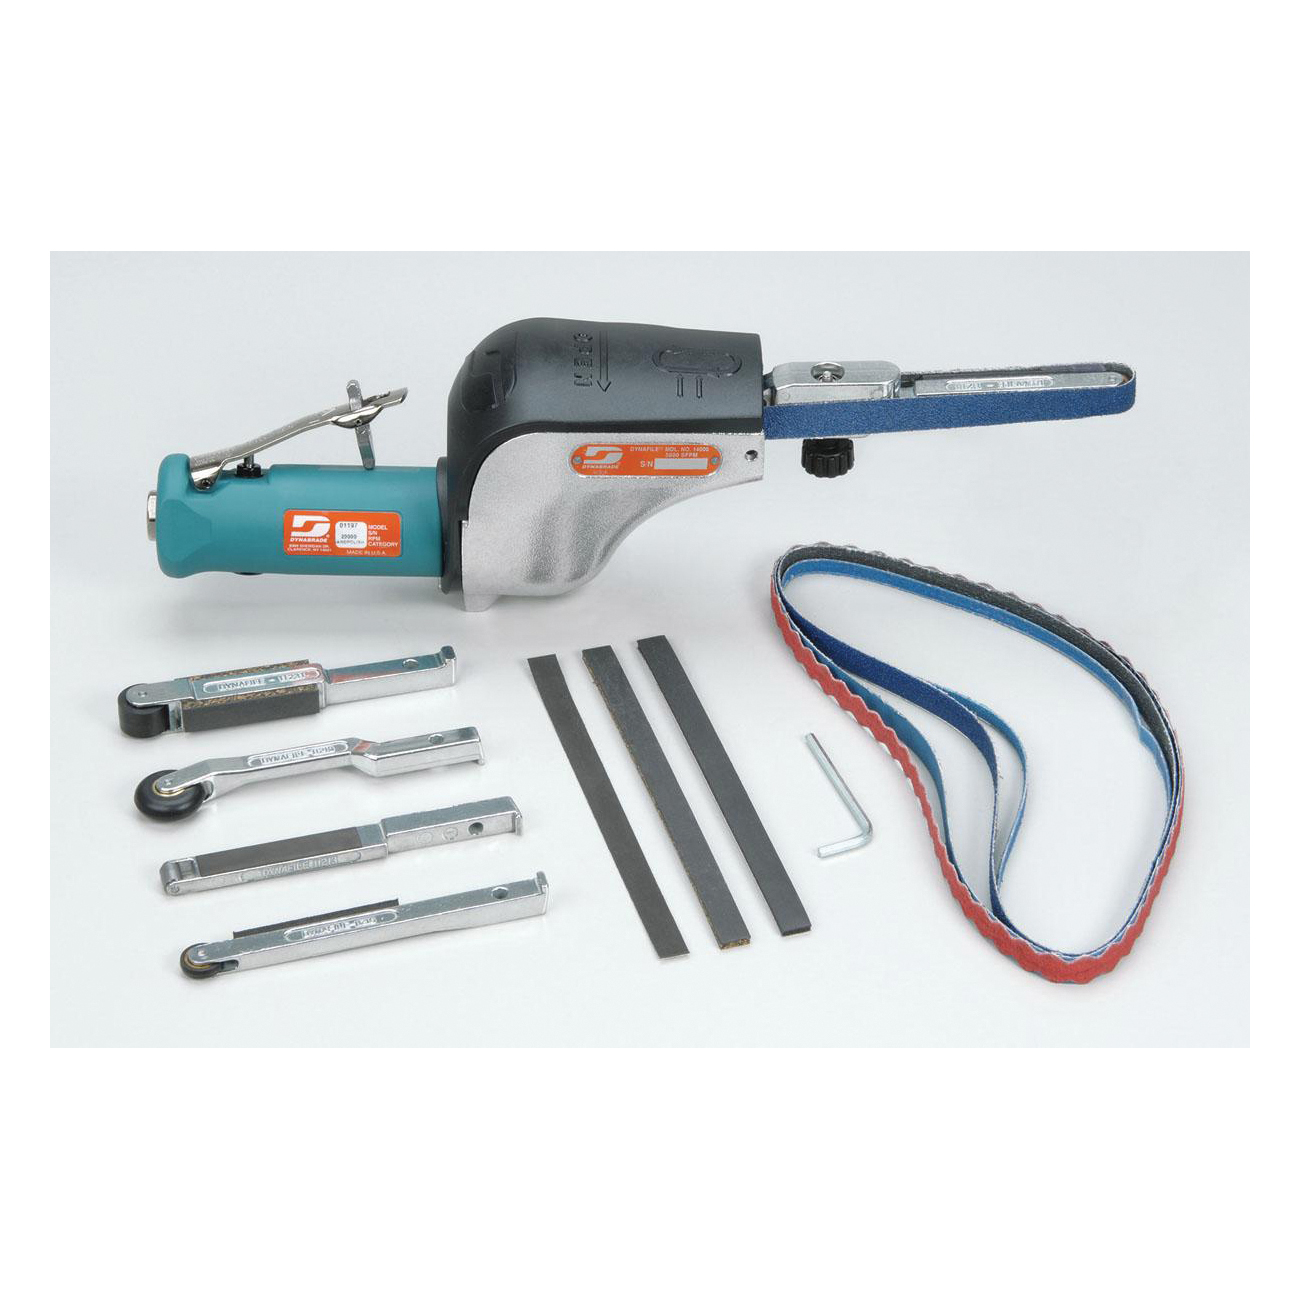 Dynabrade® Dynafile® 14010 Straight Line Abrasive Belt Tool Versatility Kit, 24 in L x 1/8 to 1/2 in W, 0.5 hp, 31 scfm, 90 psi